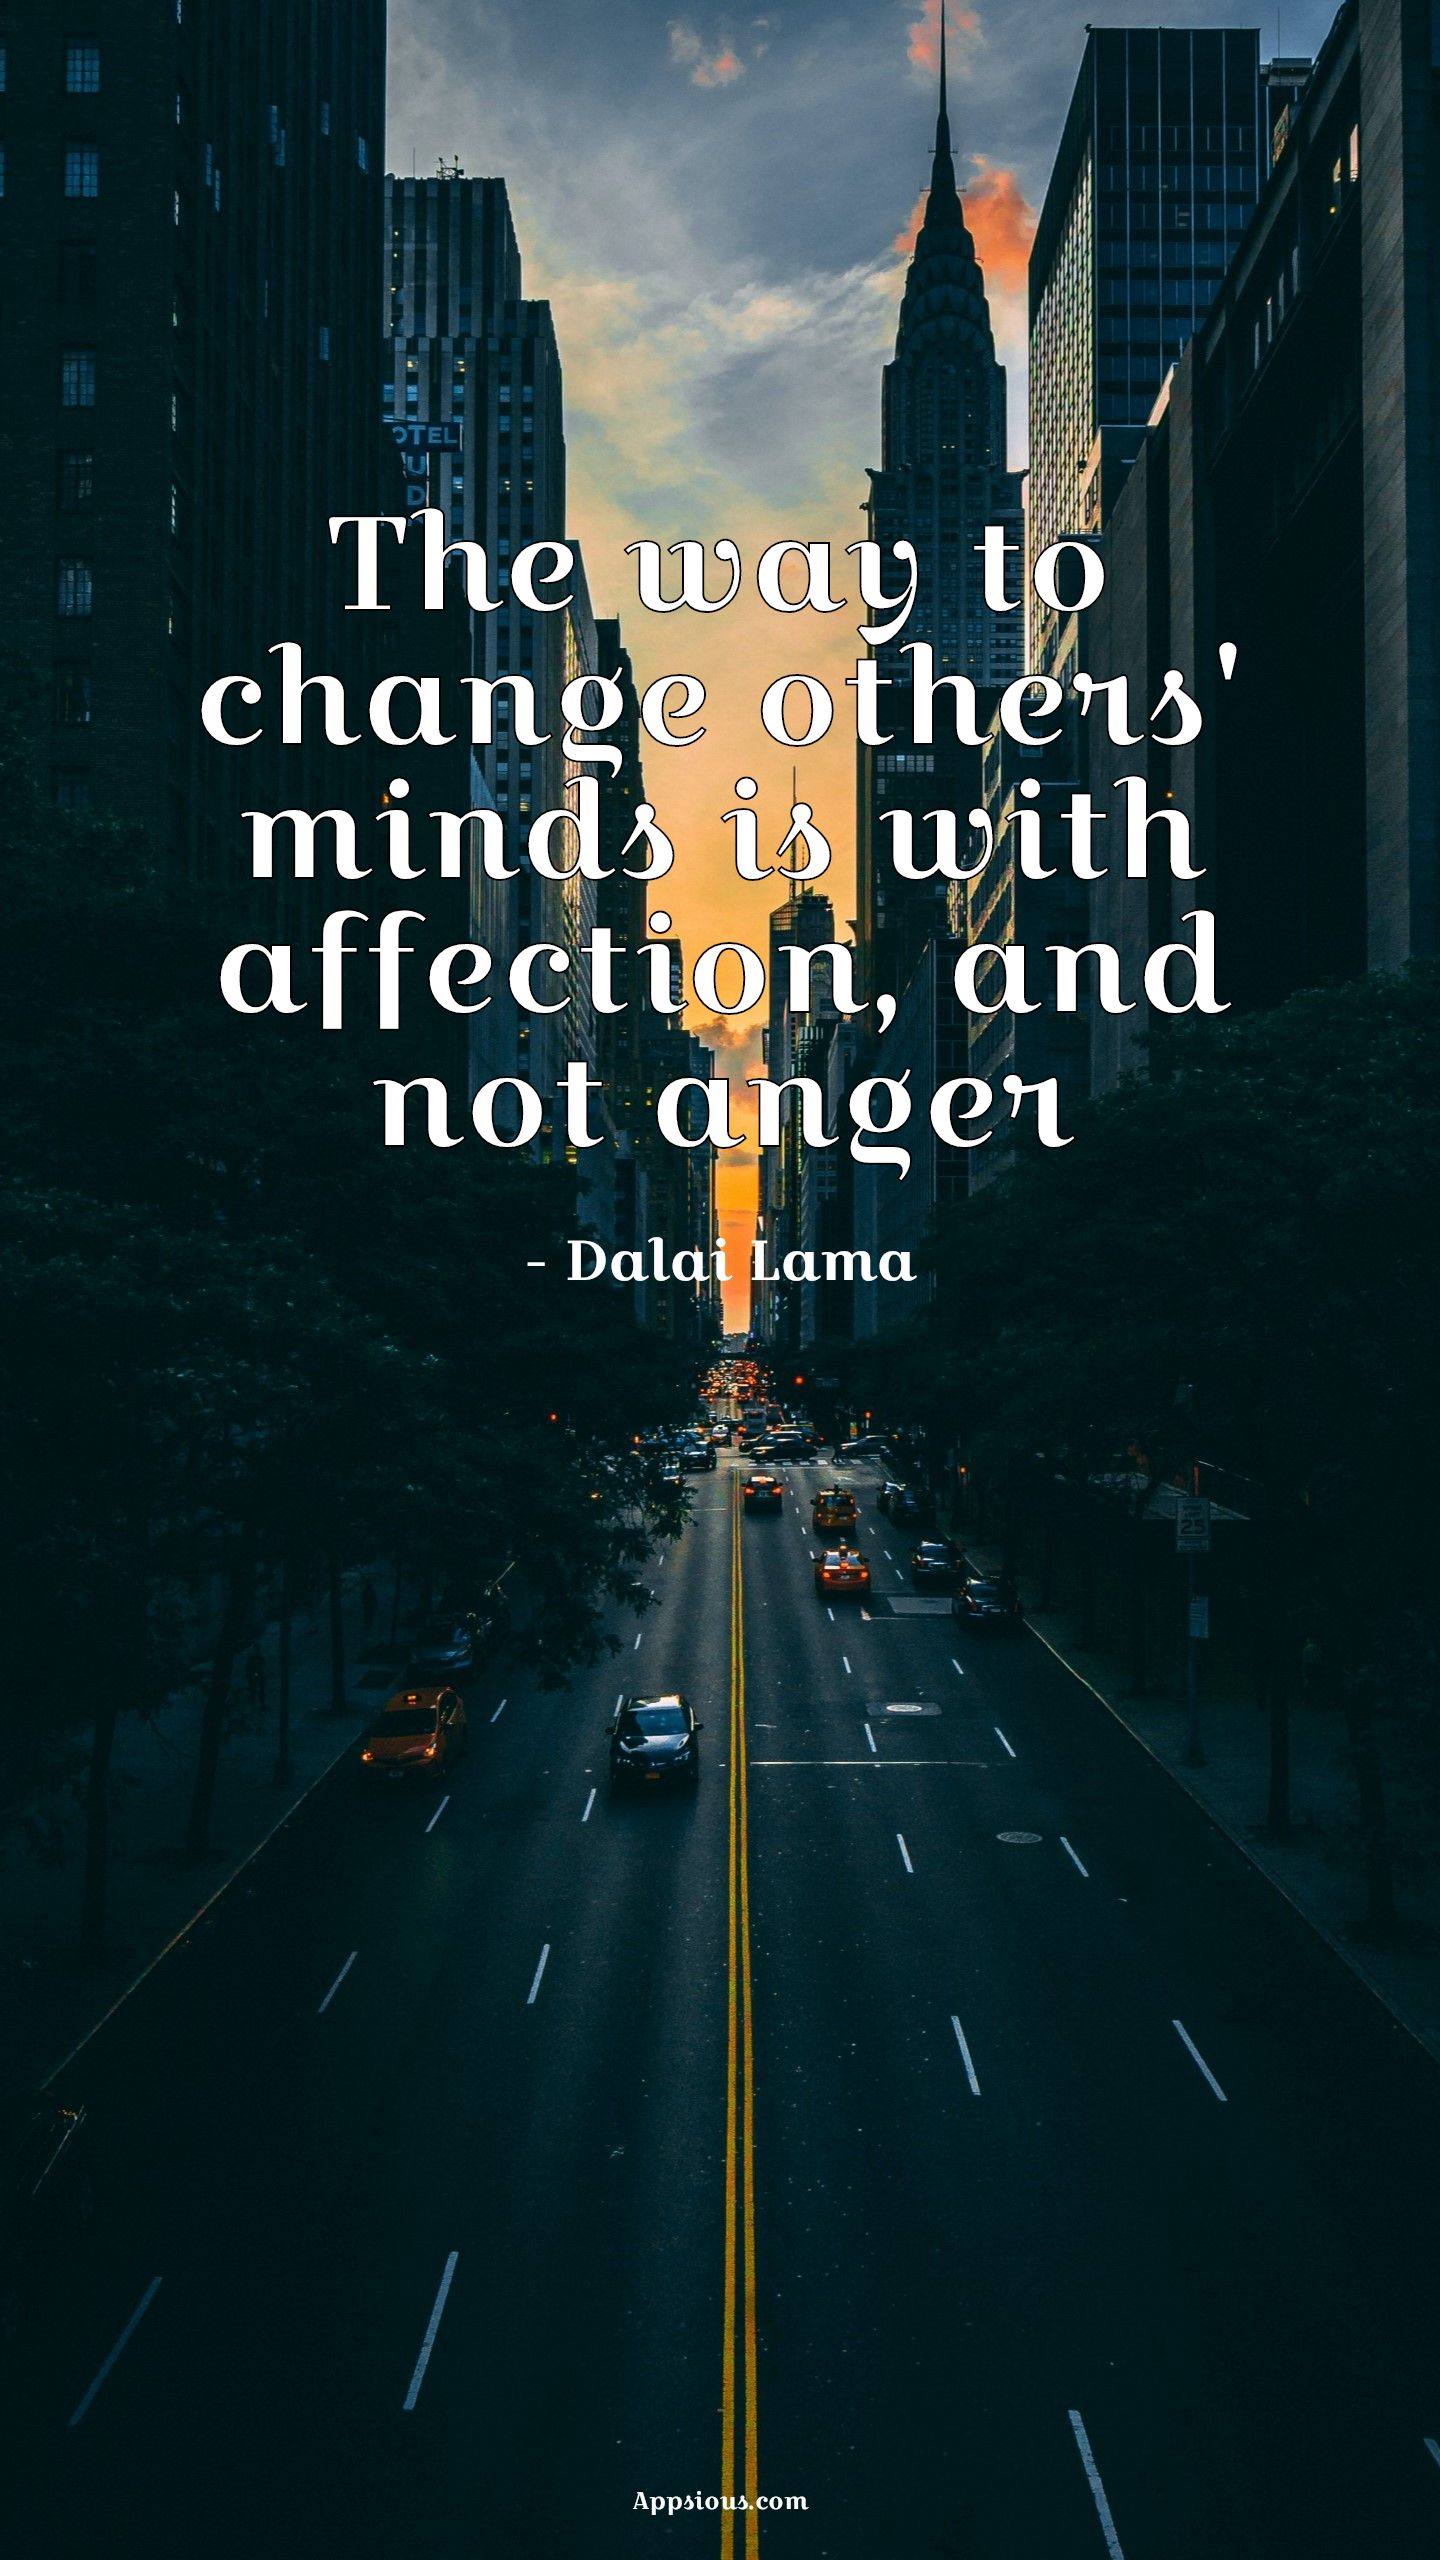 The way to change others' minds is with affection, and not anger